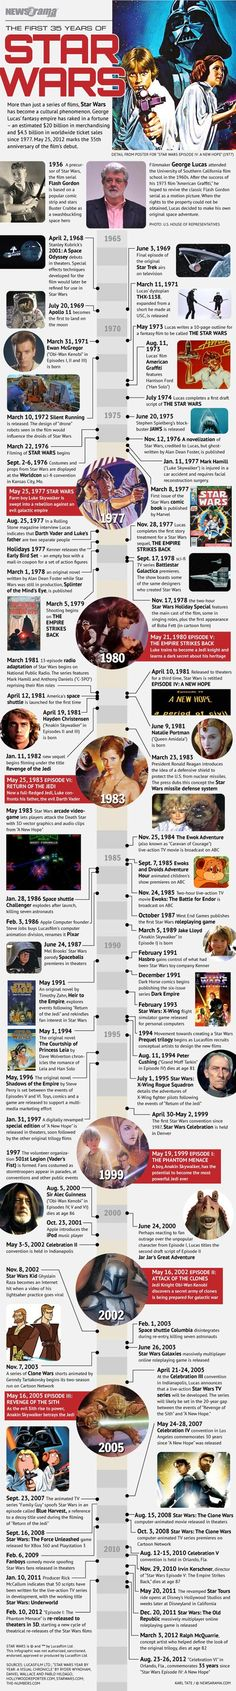 35 Years of Star Wars - can it get any better - An Infographic from Karl Tate at NewsaRama.com